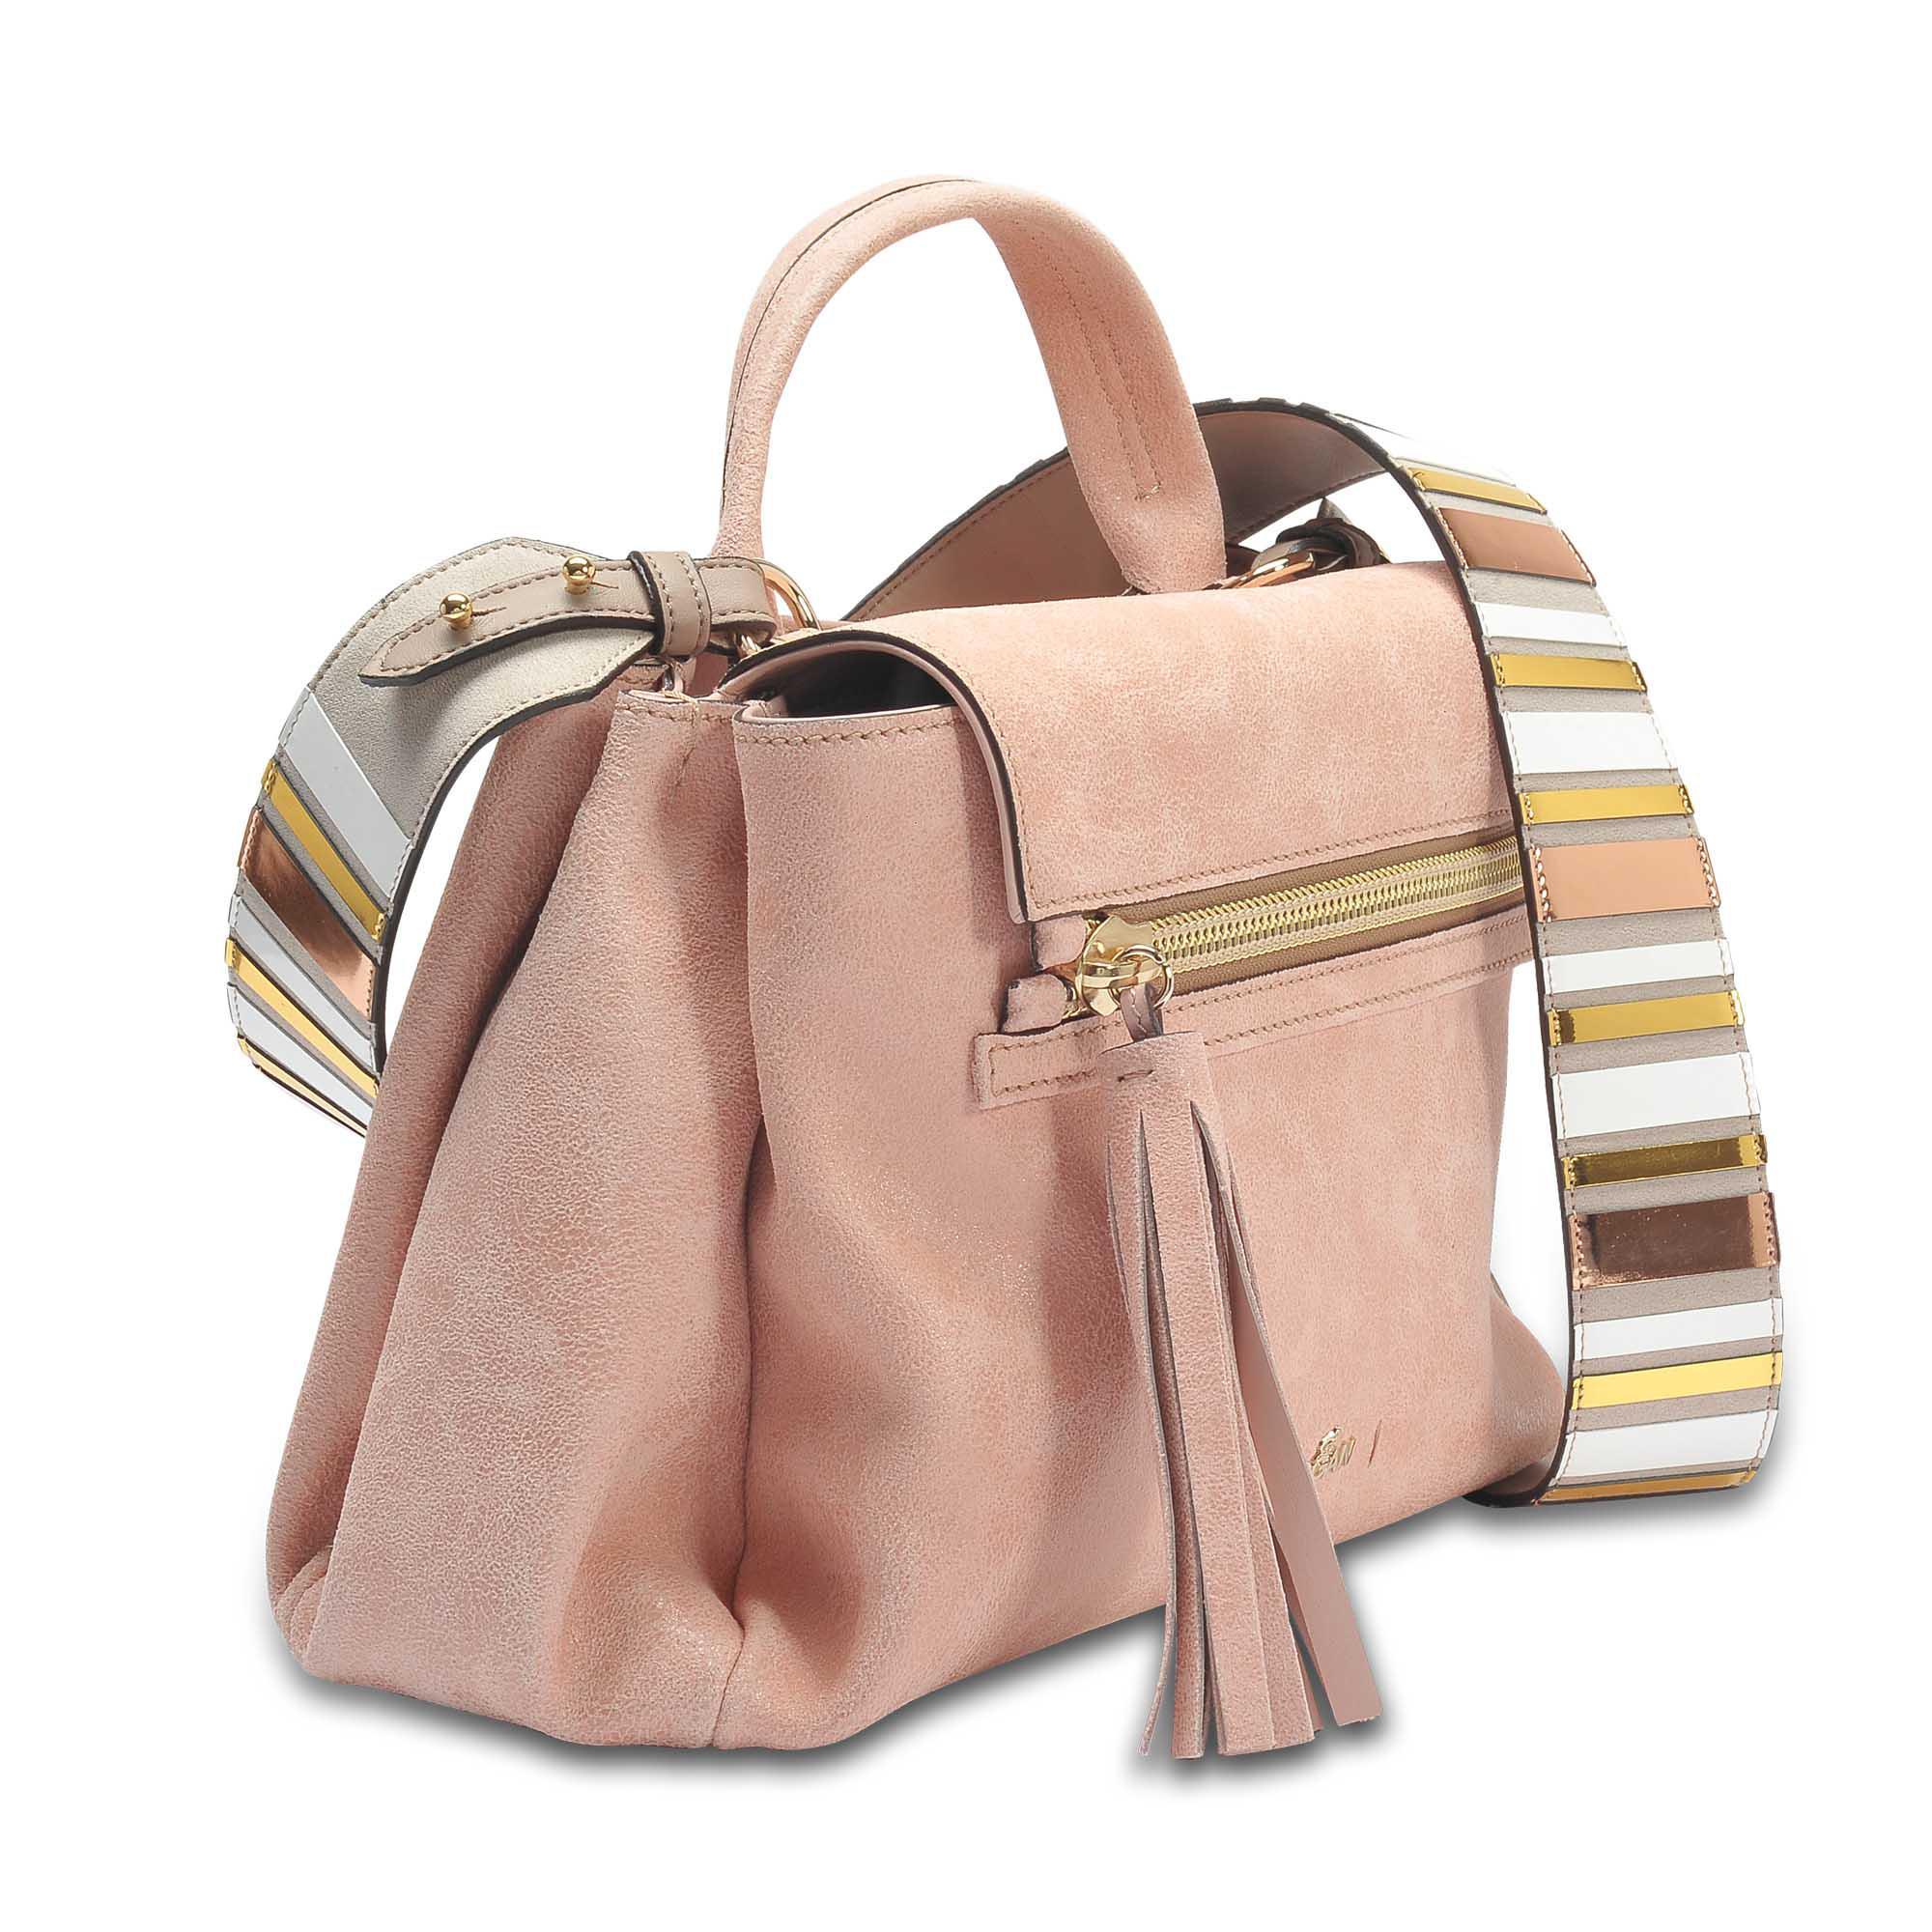 f03892d4d Hogan Horizonal Mini Tote Bag In Salmon Pink Grained Leather - Lyst